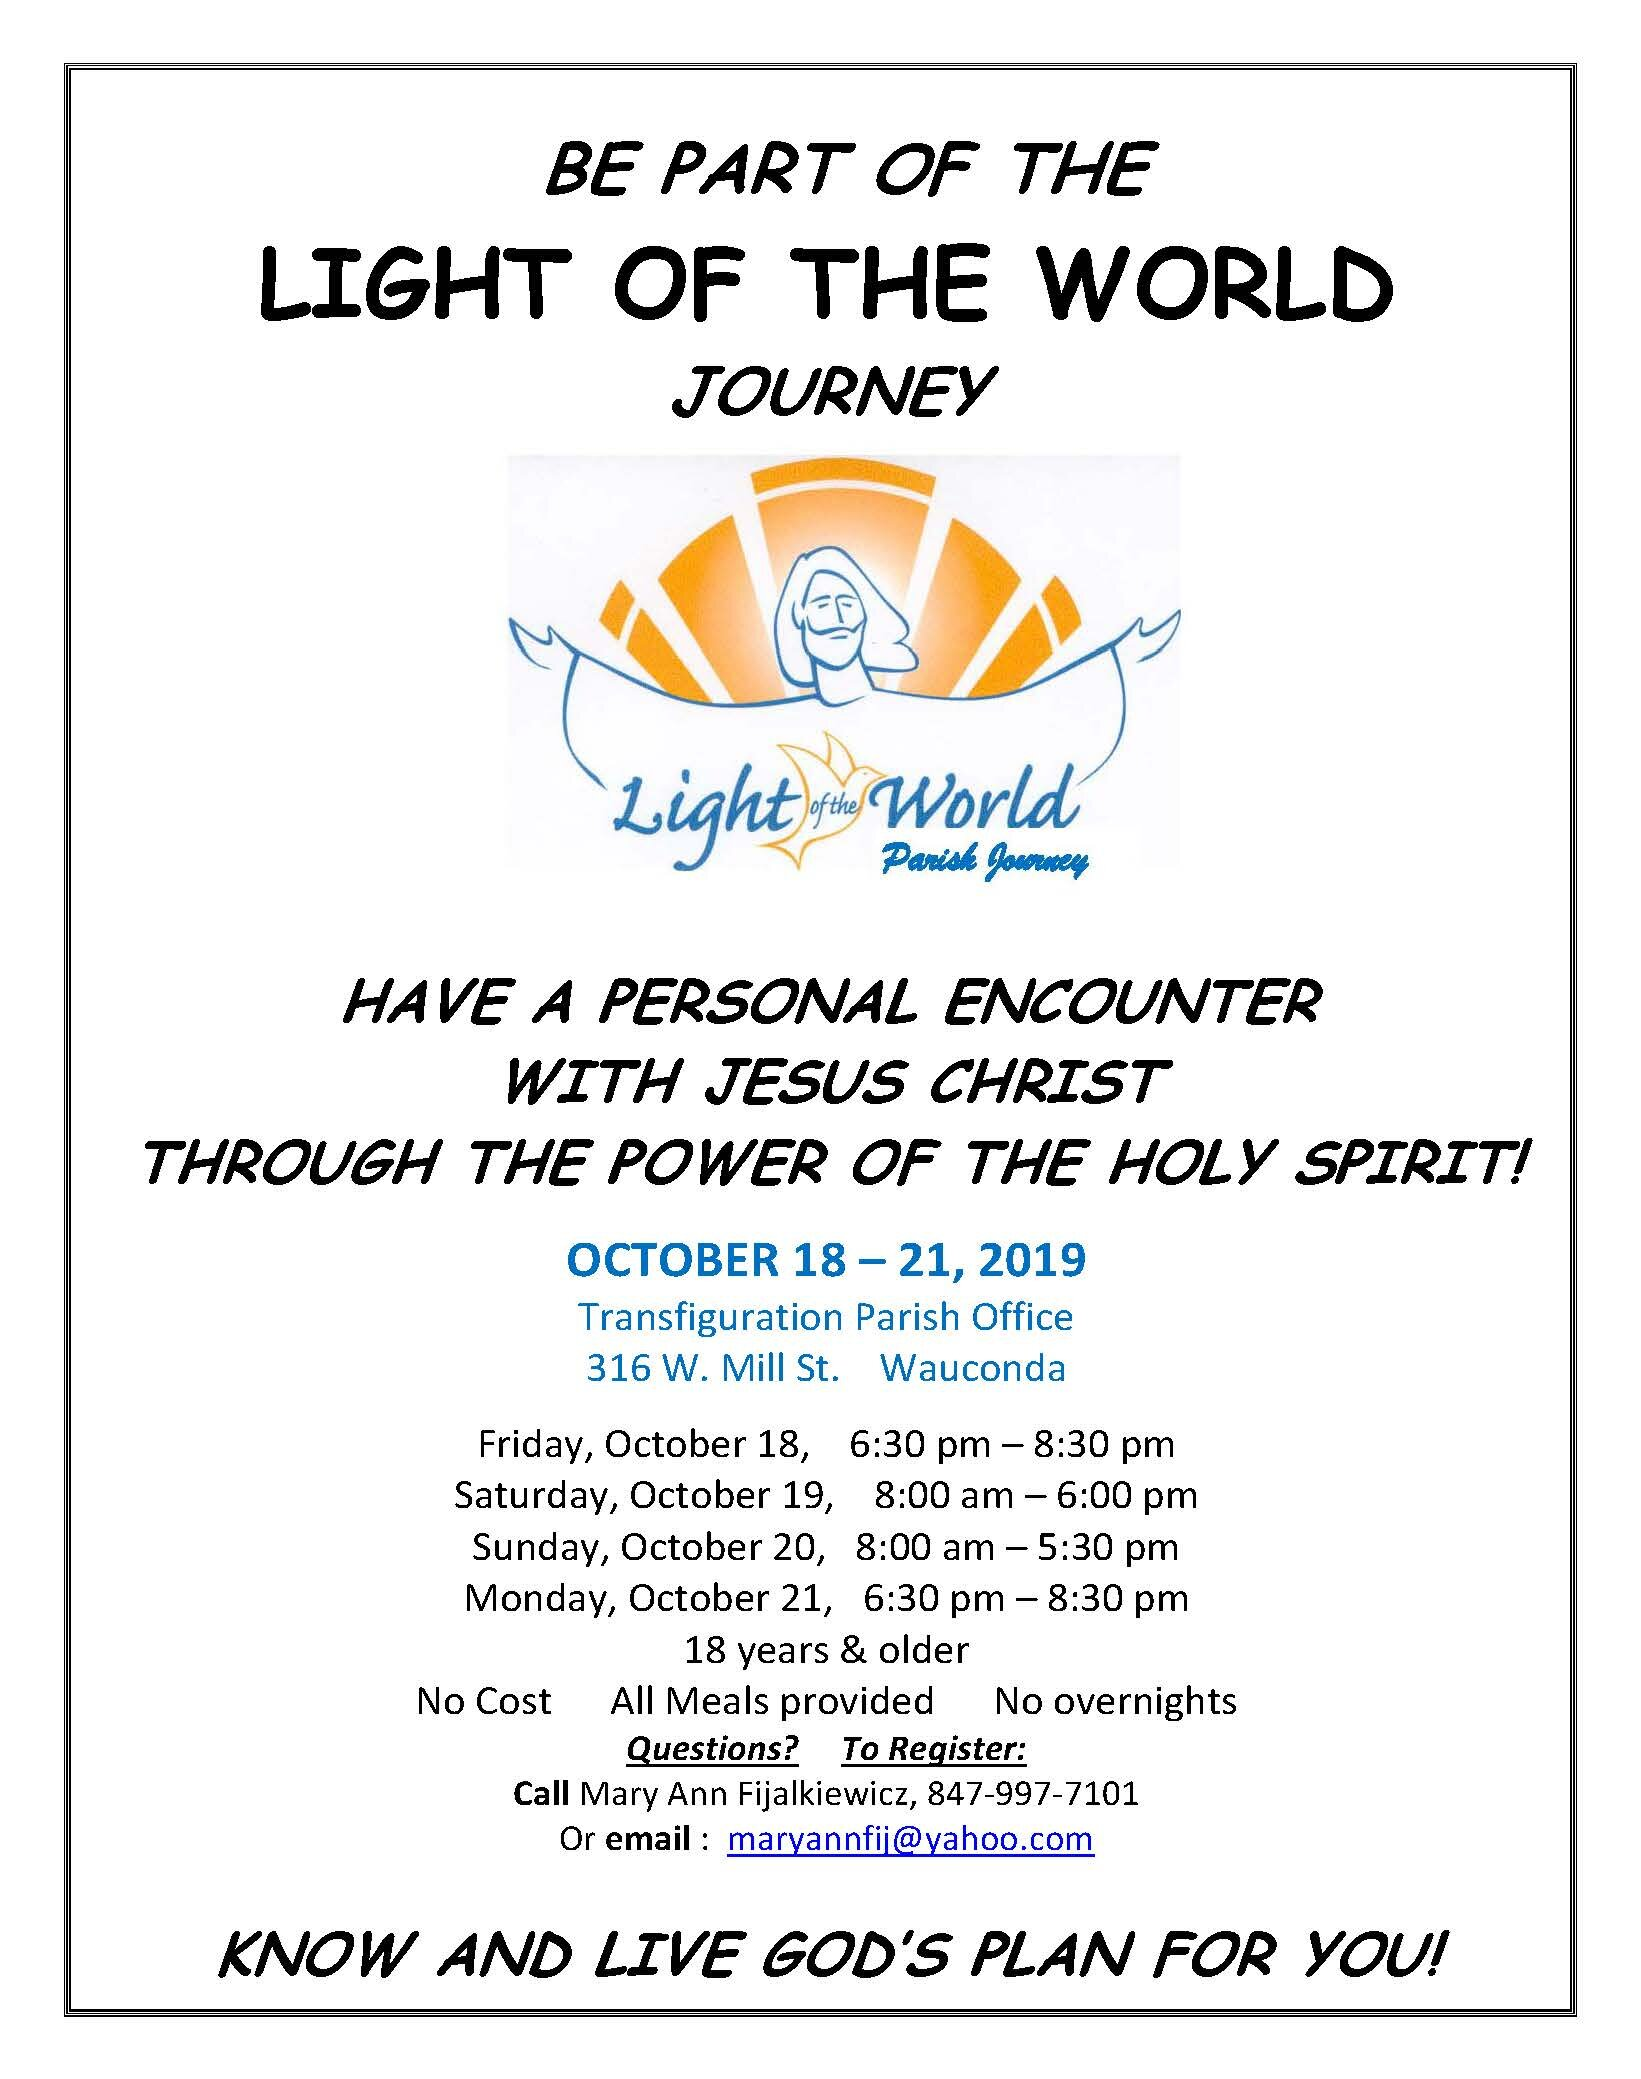 LOTW 2019 FLYER FOR AREA PARISHES.jpg